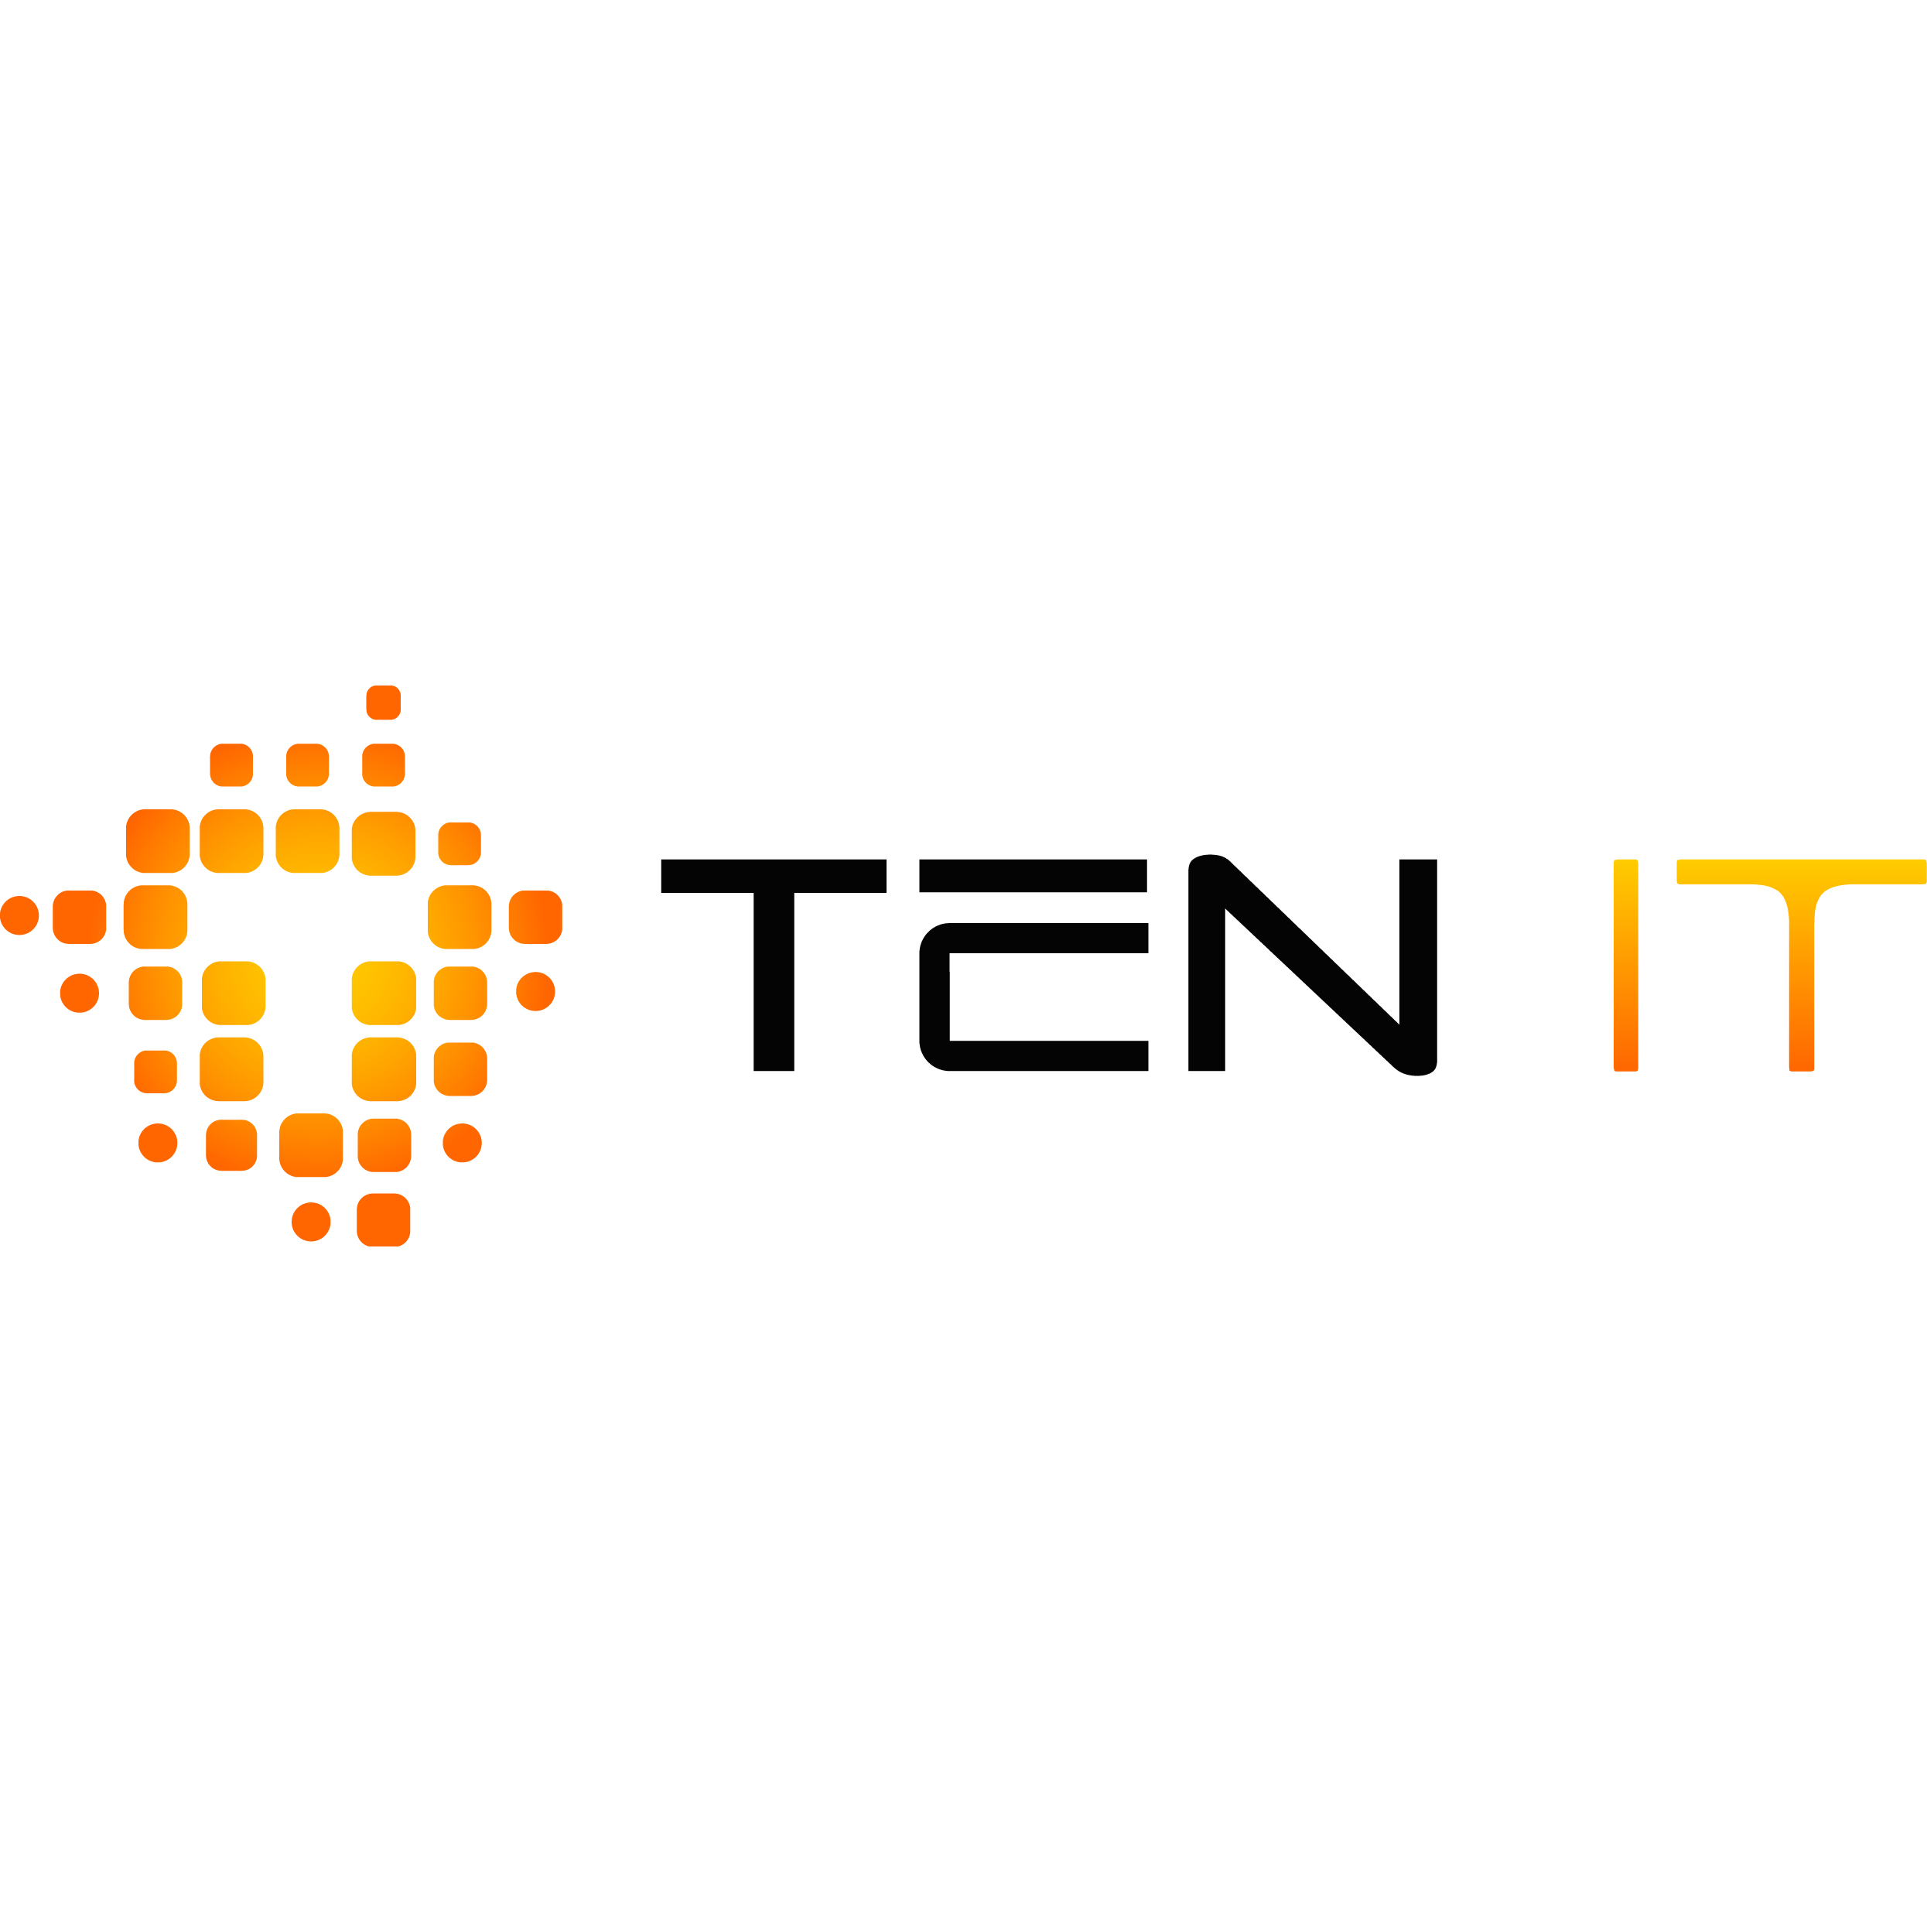 TEN IT GmbH